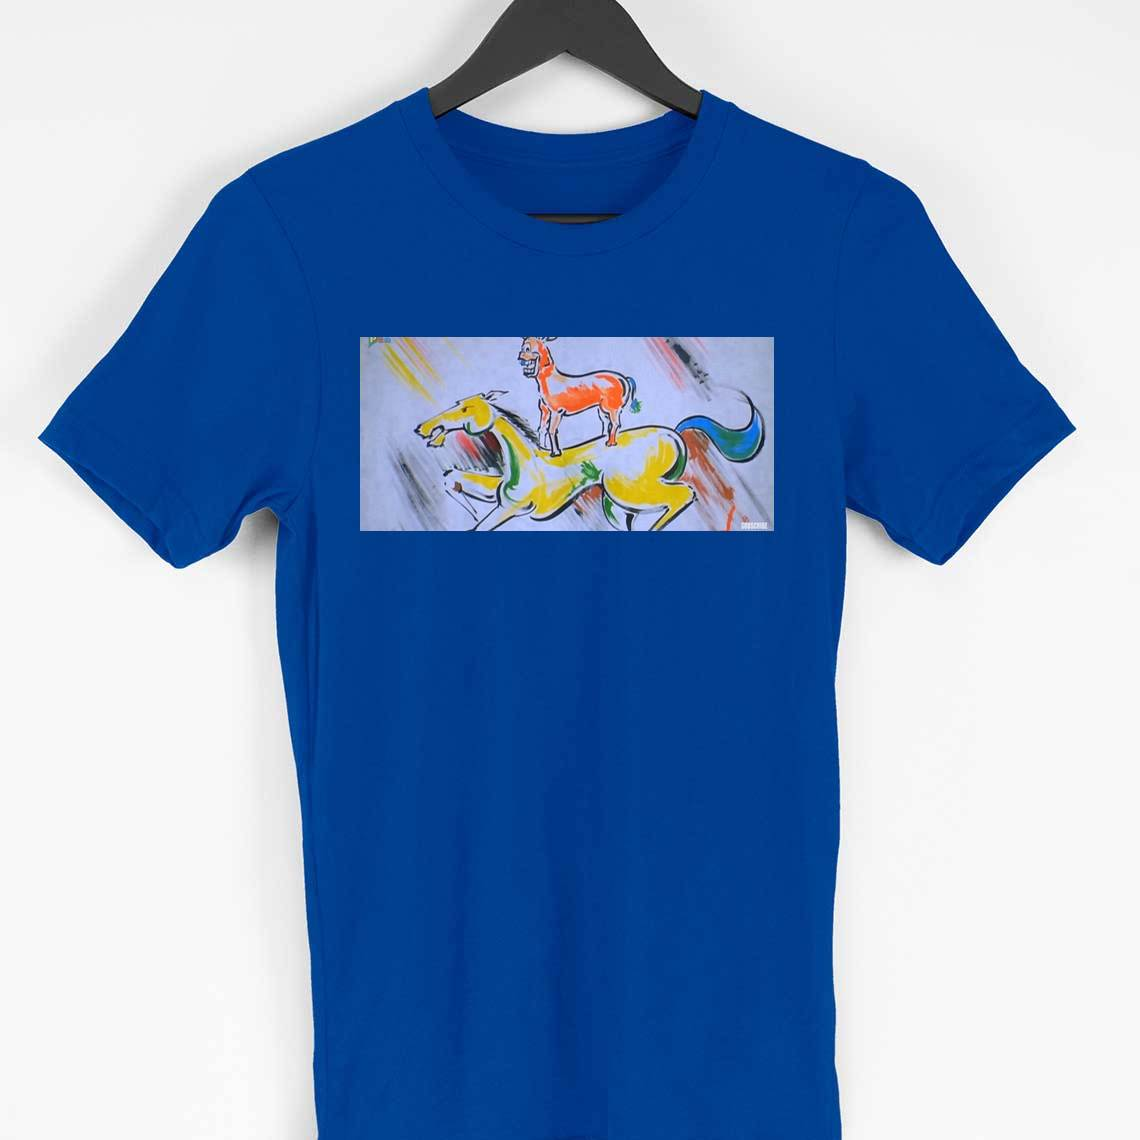 Majnu bhai painting t-shirt (blue)